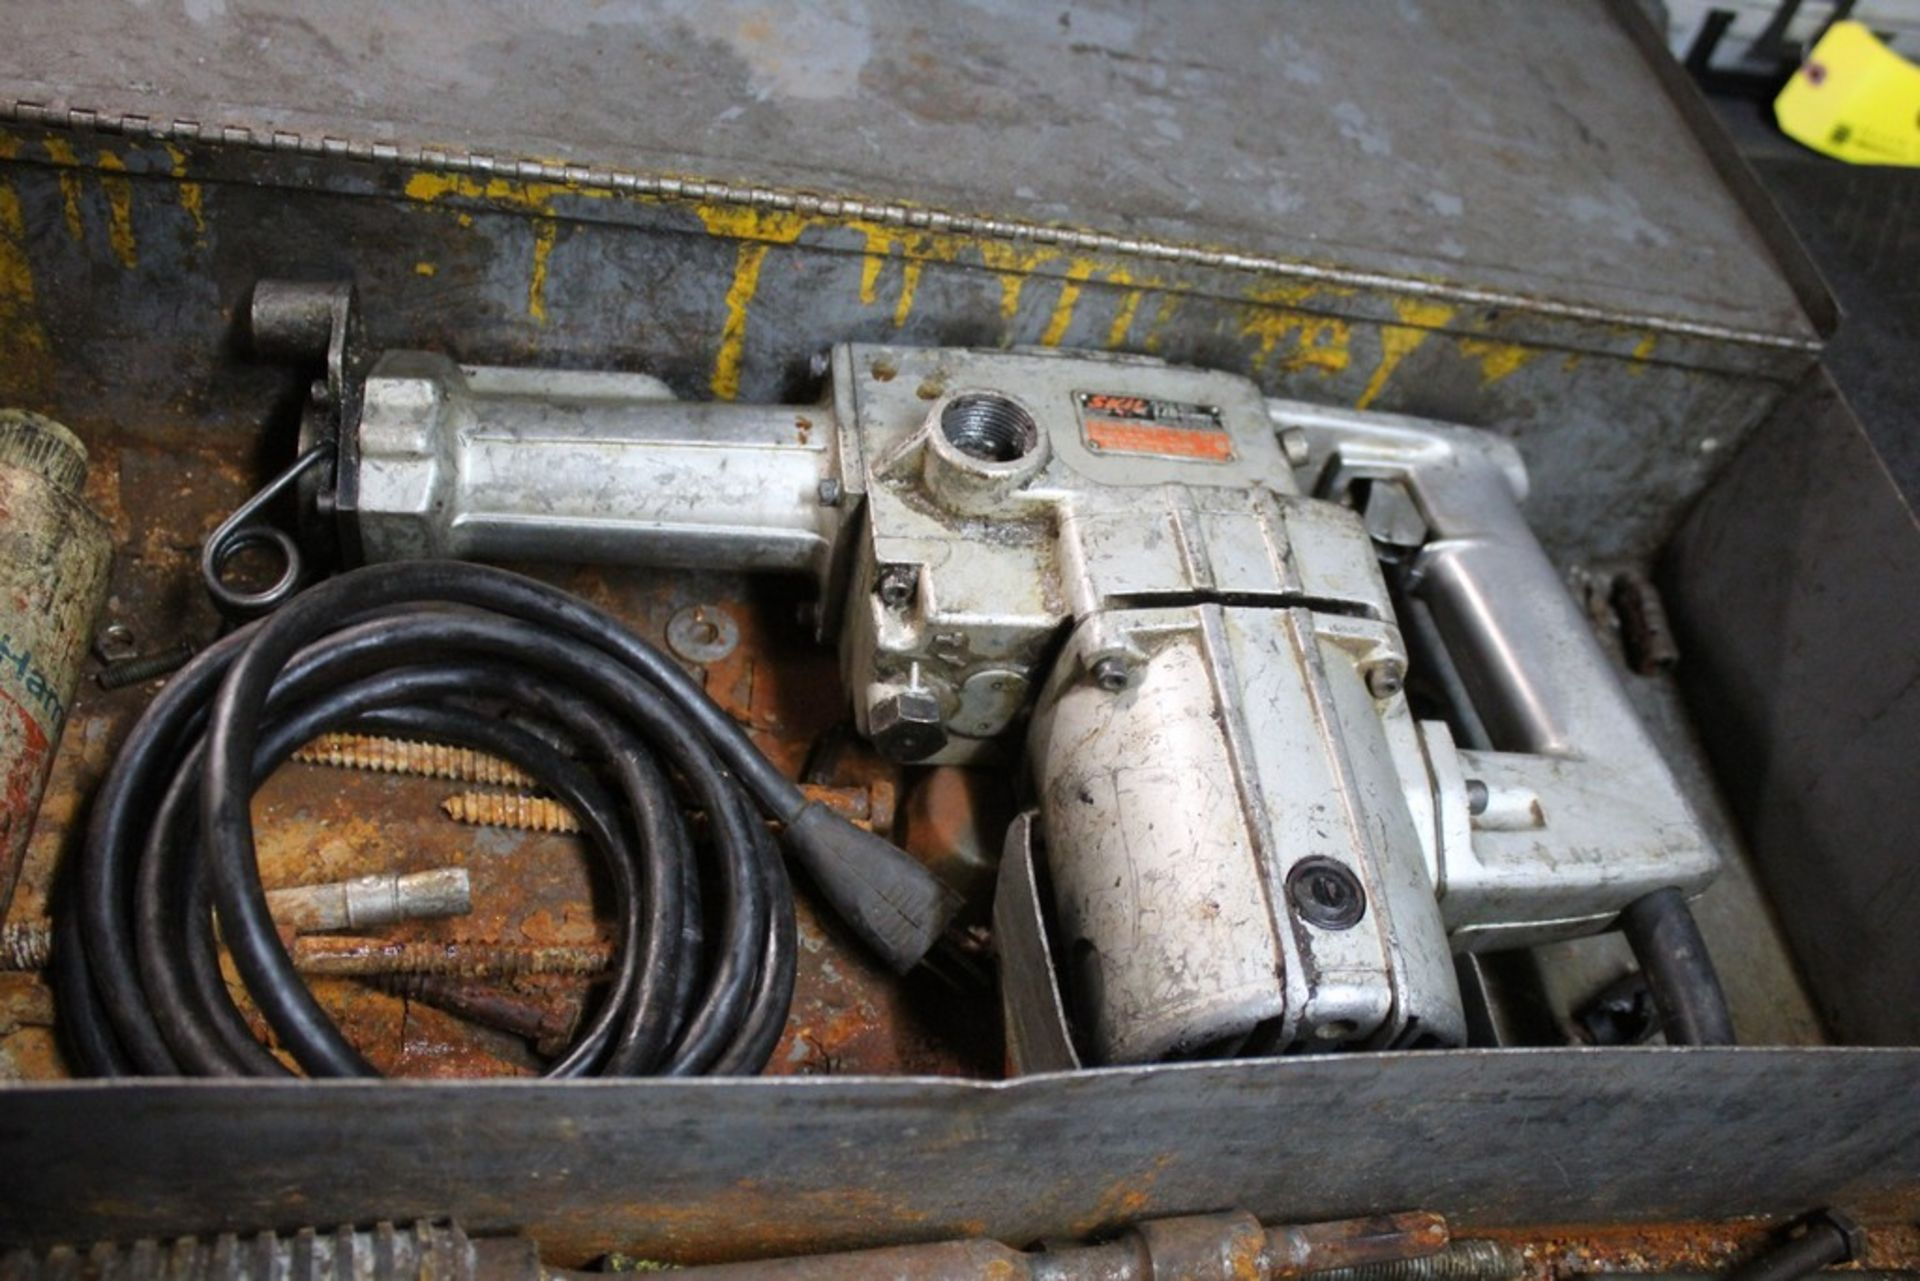 Lot 1 - SKIL 726 ROTO HAMMER WITH BITS AND CASE